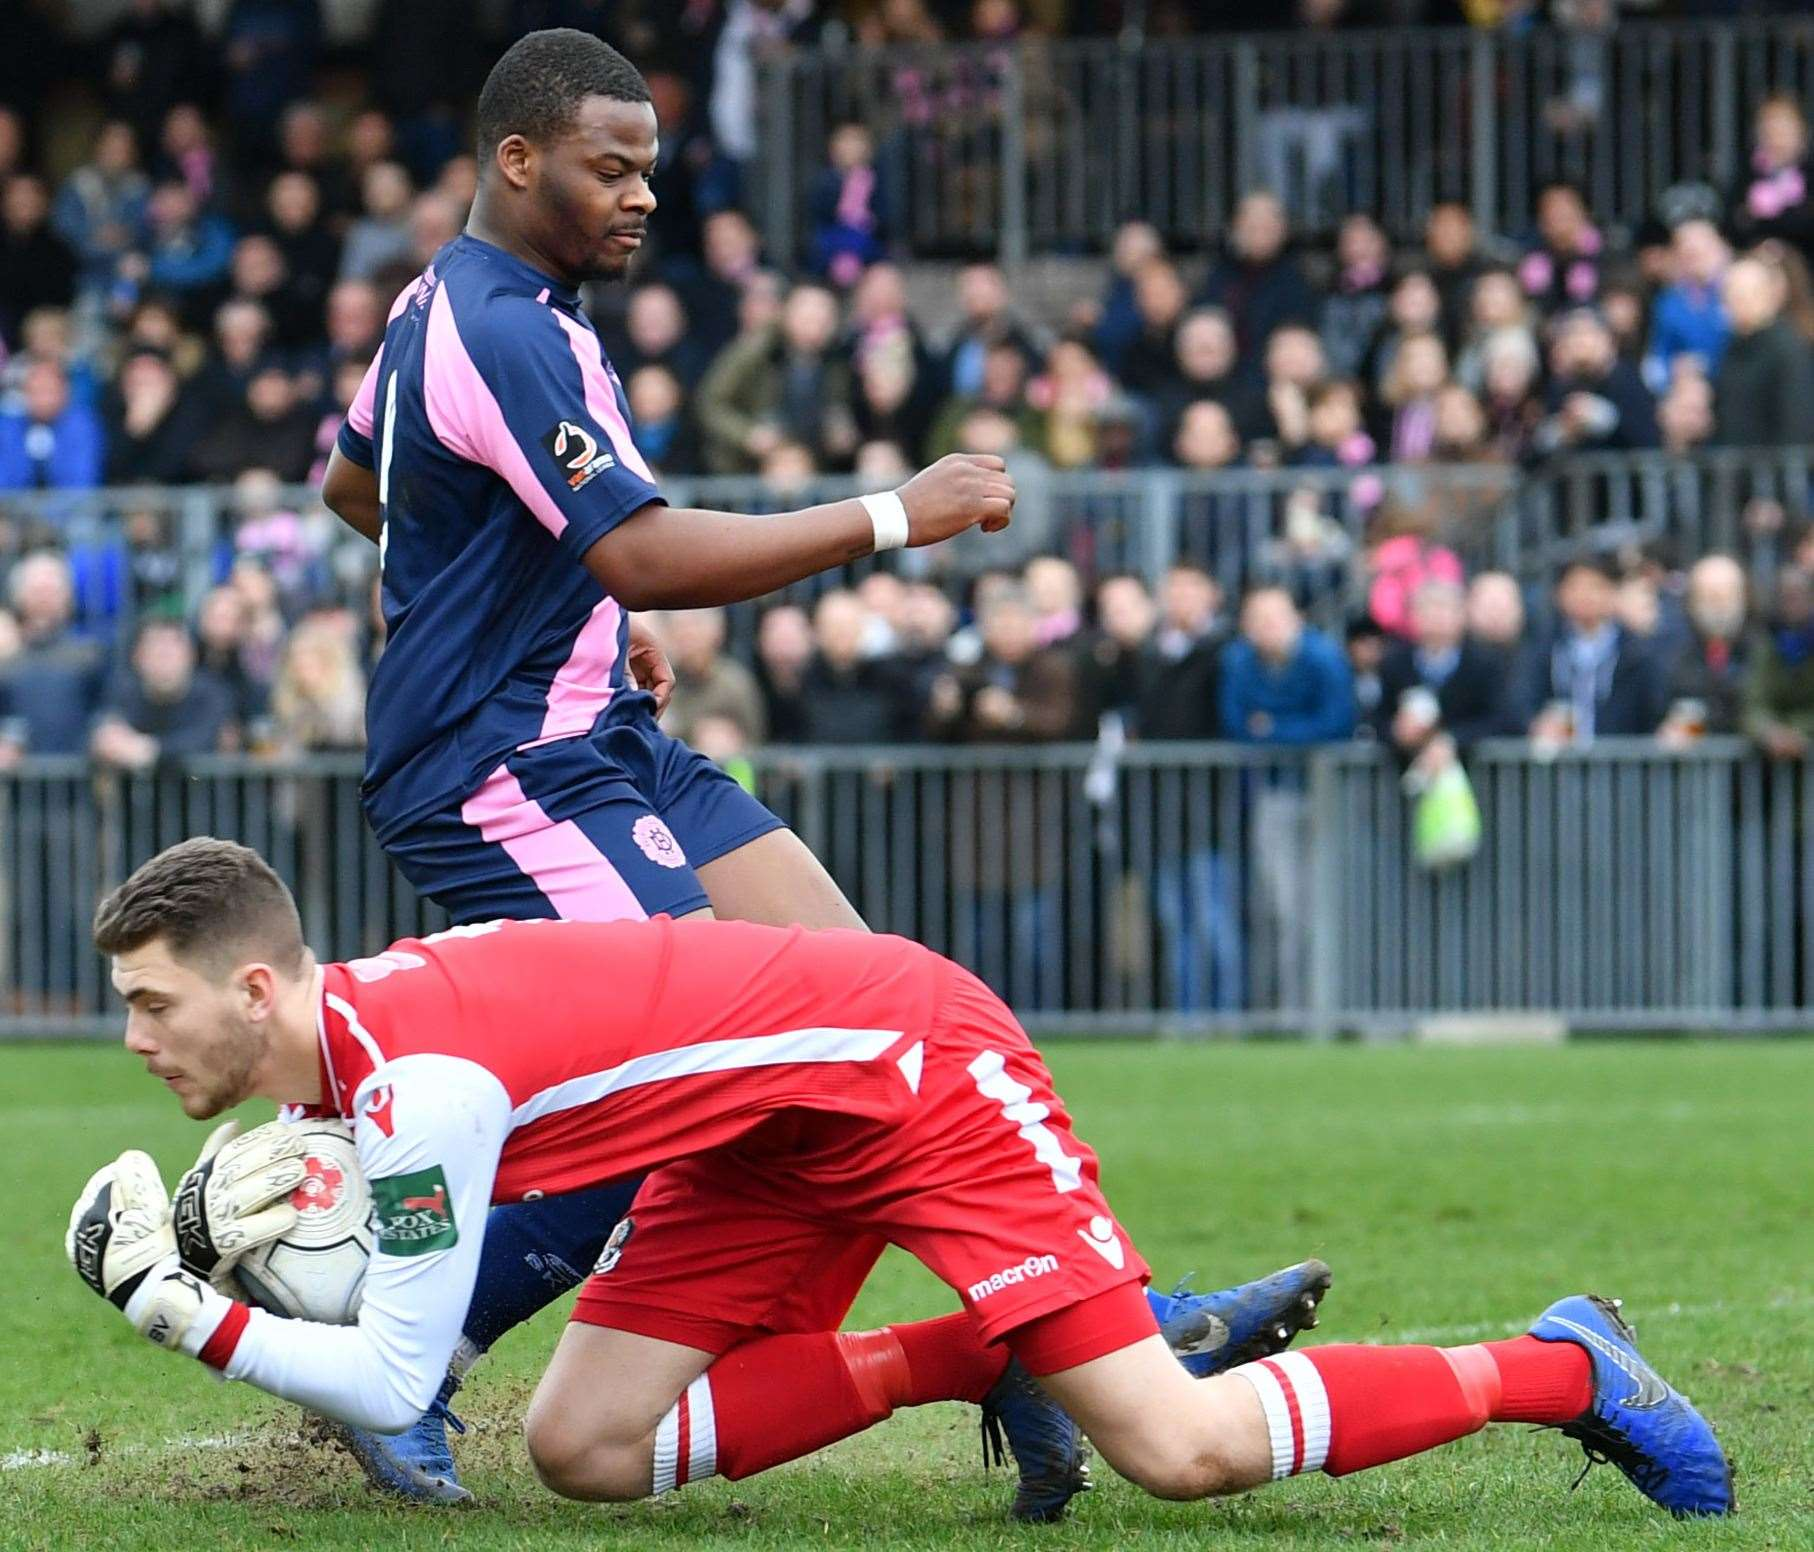 Goalkeeper Bailey Vose in action for Dartford against Dulwich. Picture: Keith Gillard